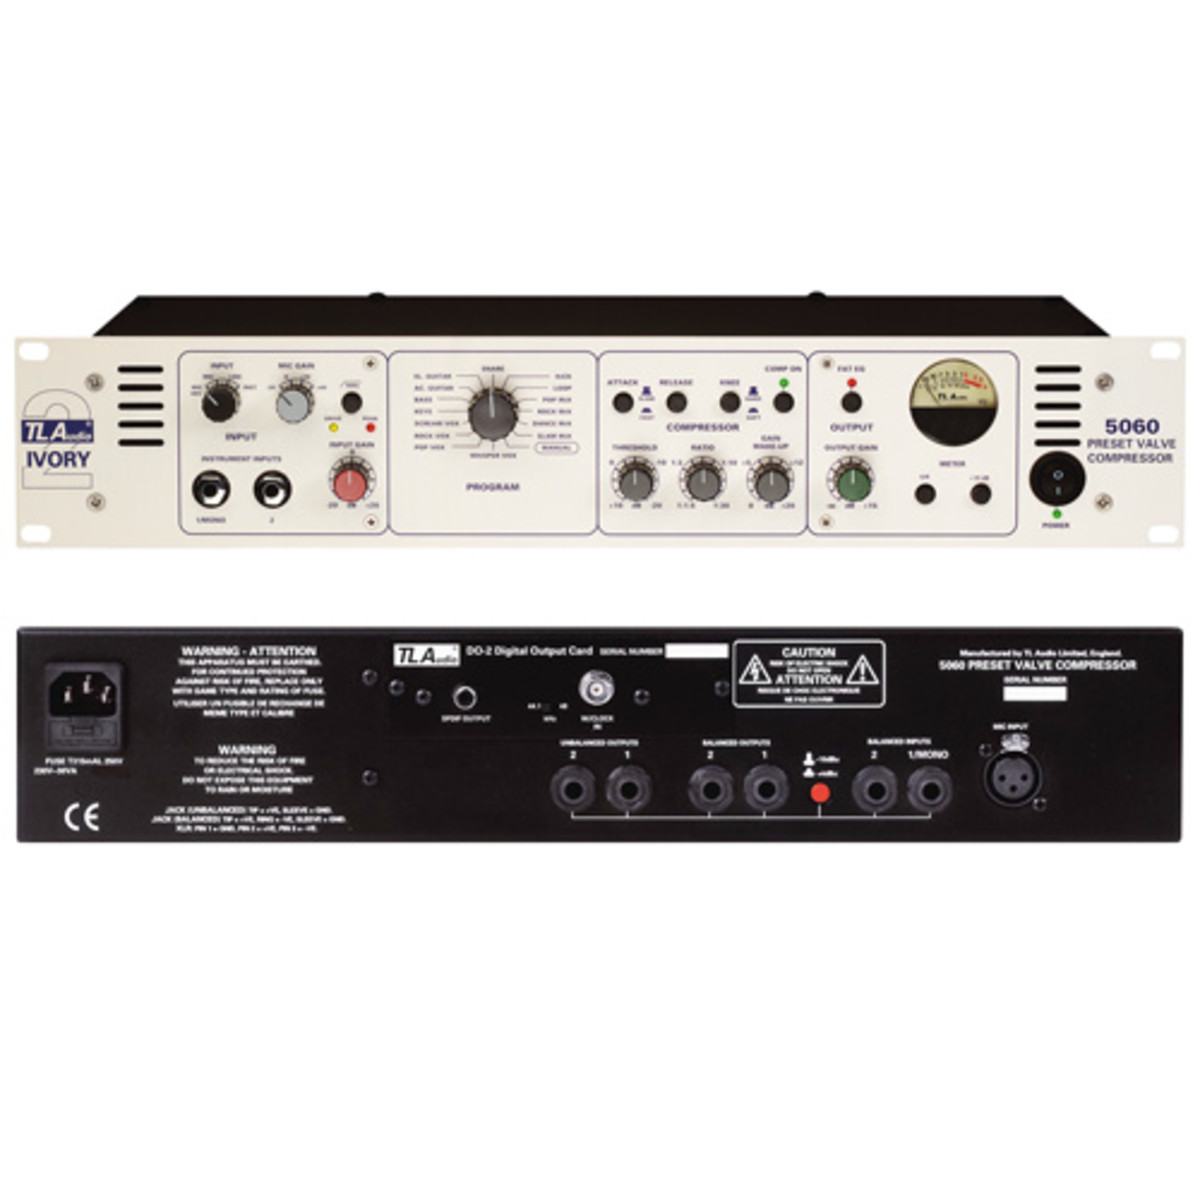 Tl Audio 5060 Ivory 2 Stereo Valve Comp Mic Pre At Gear4music The Preamplifier With Dual Recording Tl5060 Loading Zoom